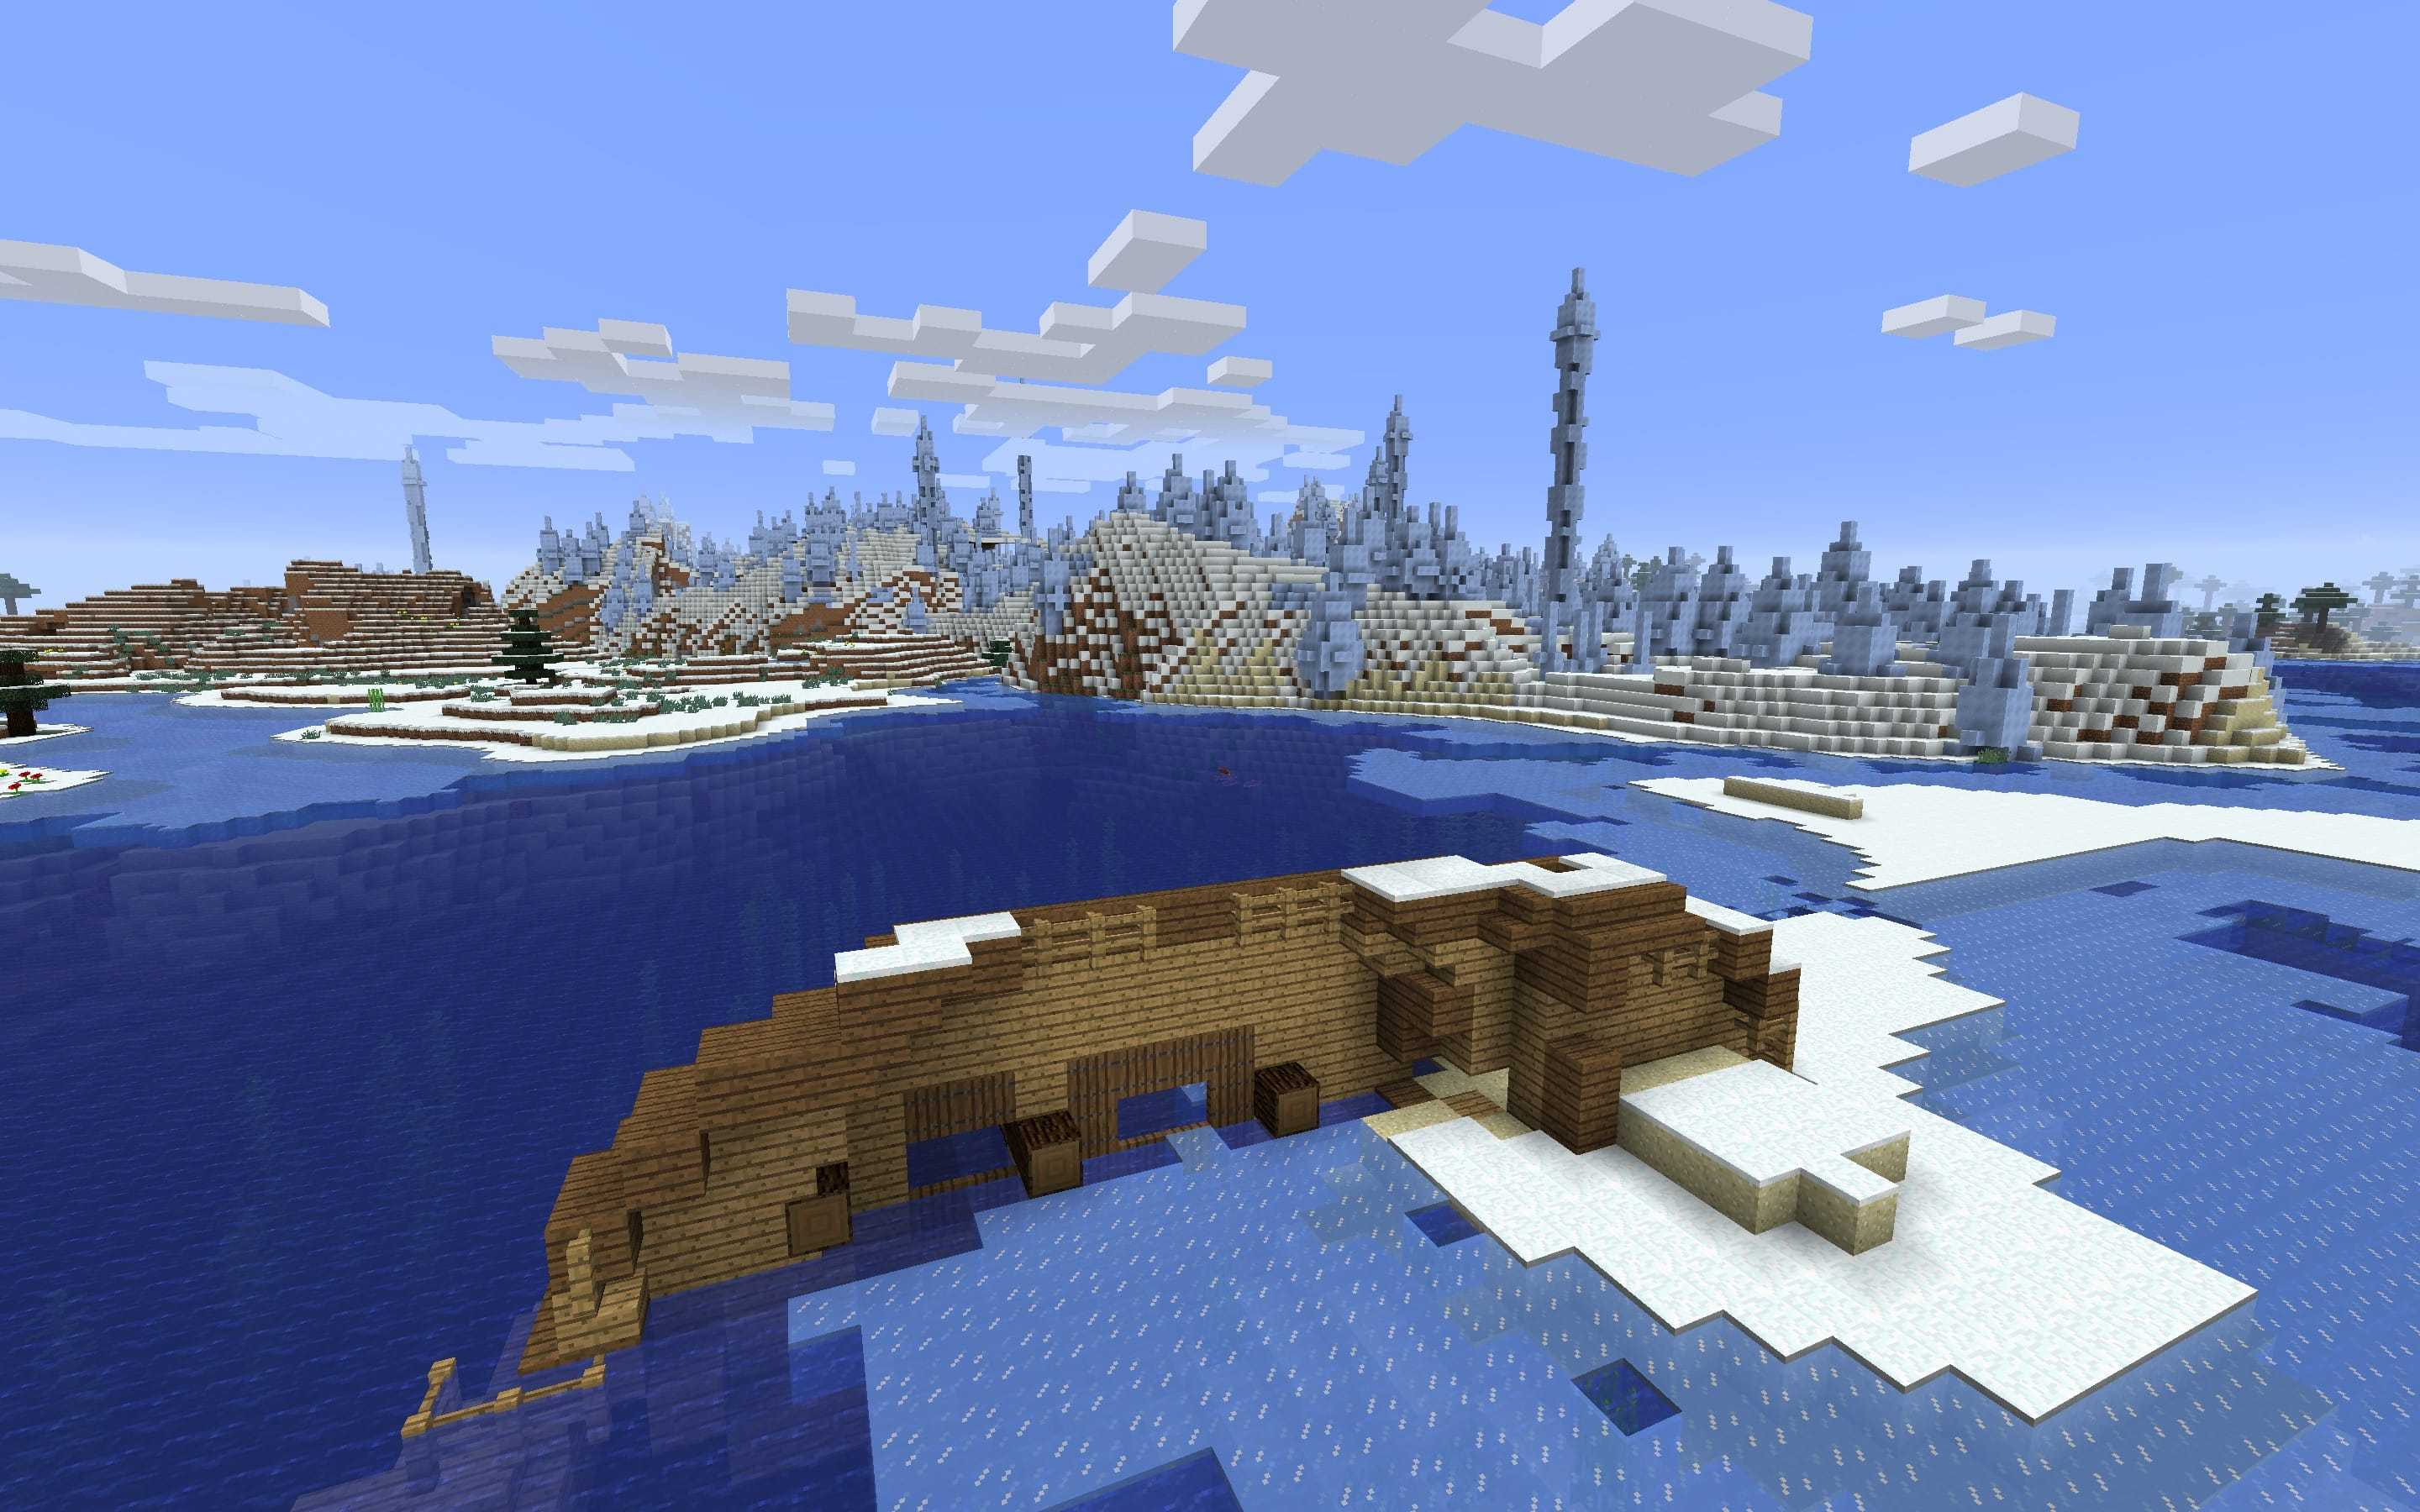 Shipwreck in the Land of Ice Spikes